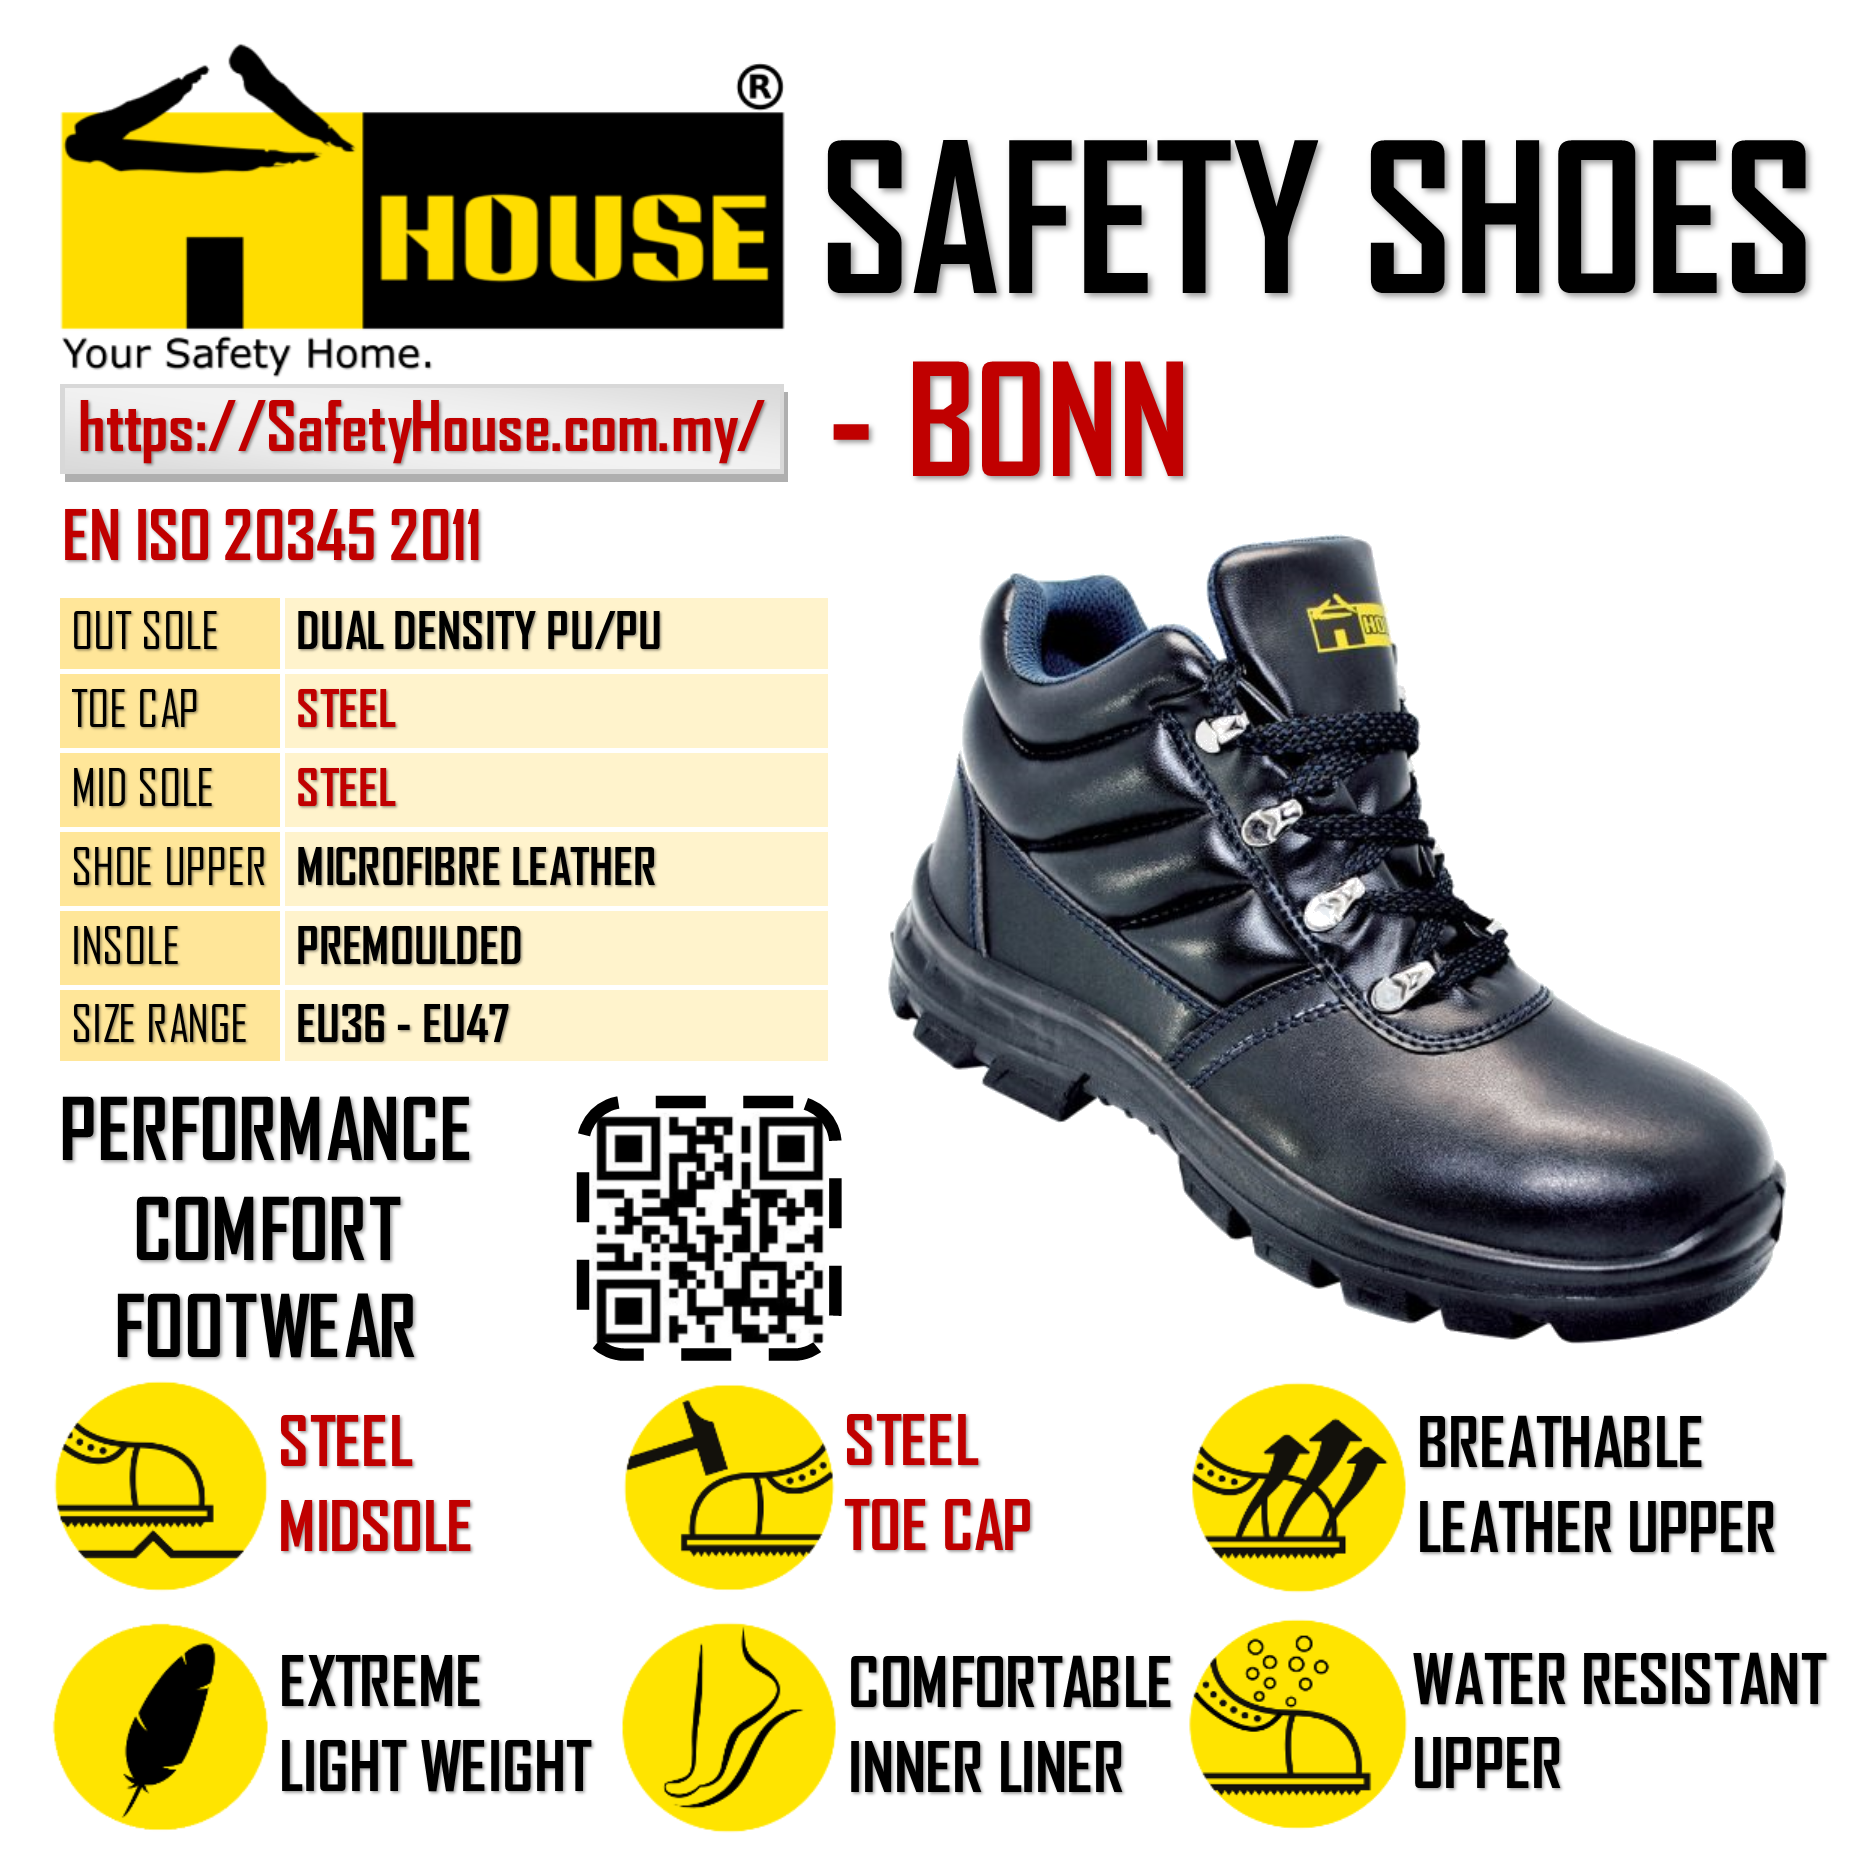 HOUSE BONN SAFETY SHOES C/W STEEL TOE CAP & STEEL MID SOLE